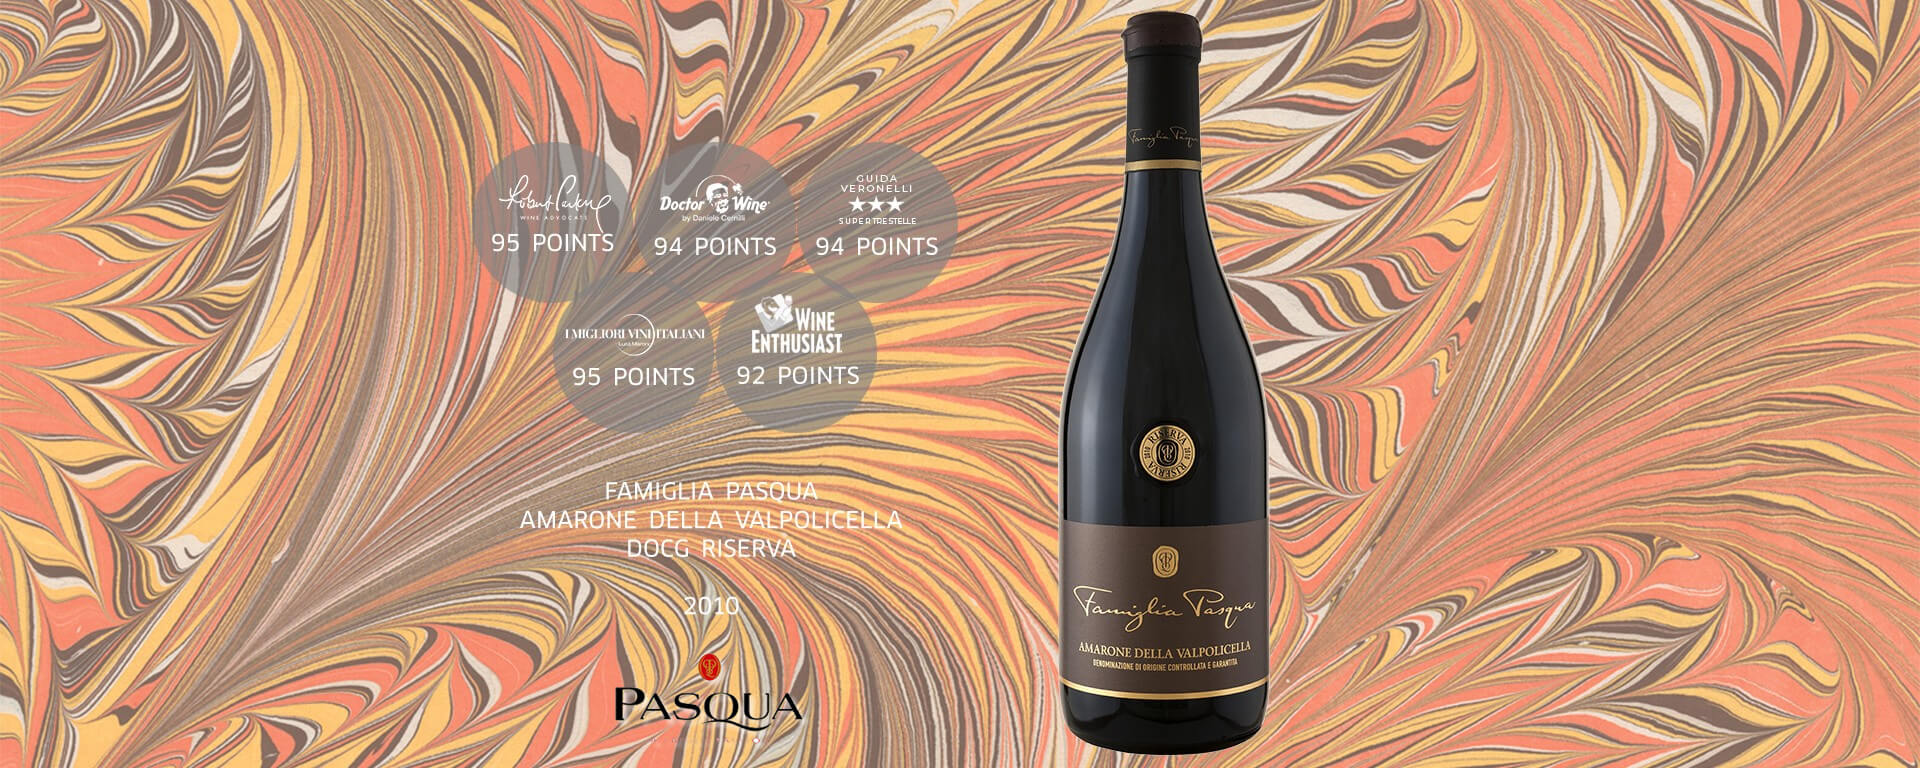 award-winning-wines-wine-brokers-pasqua